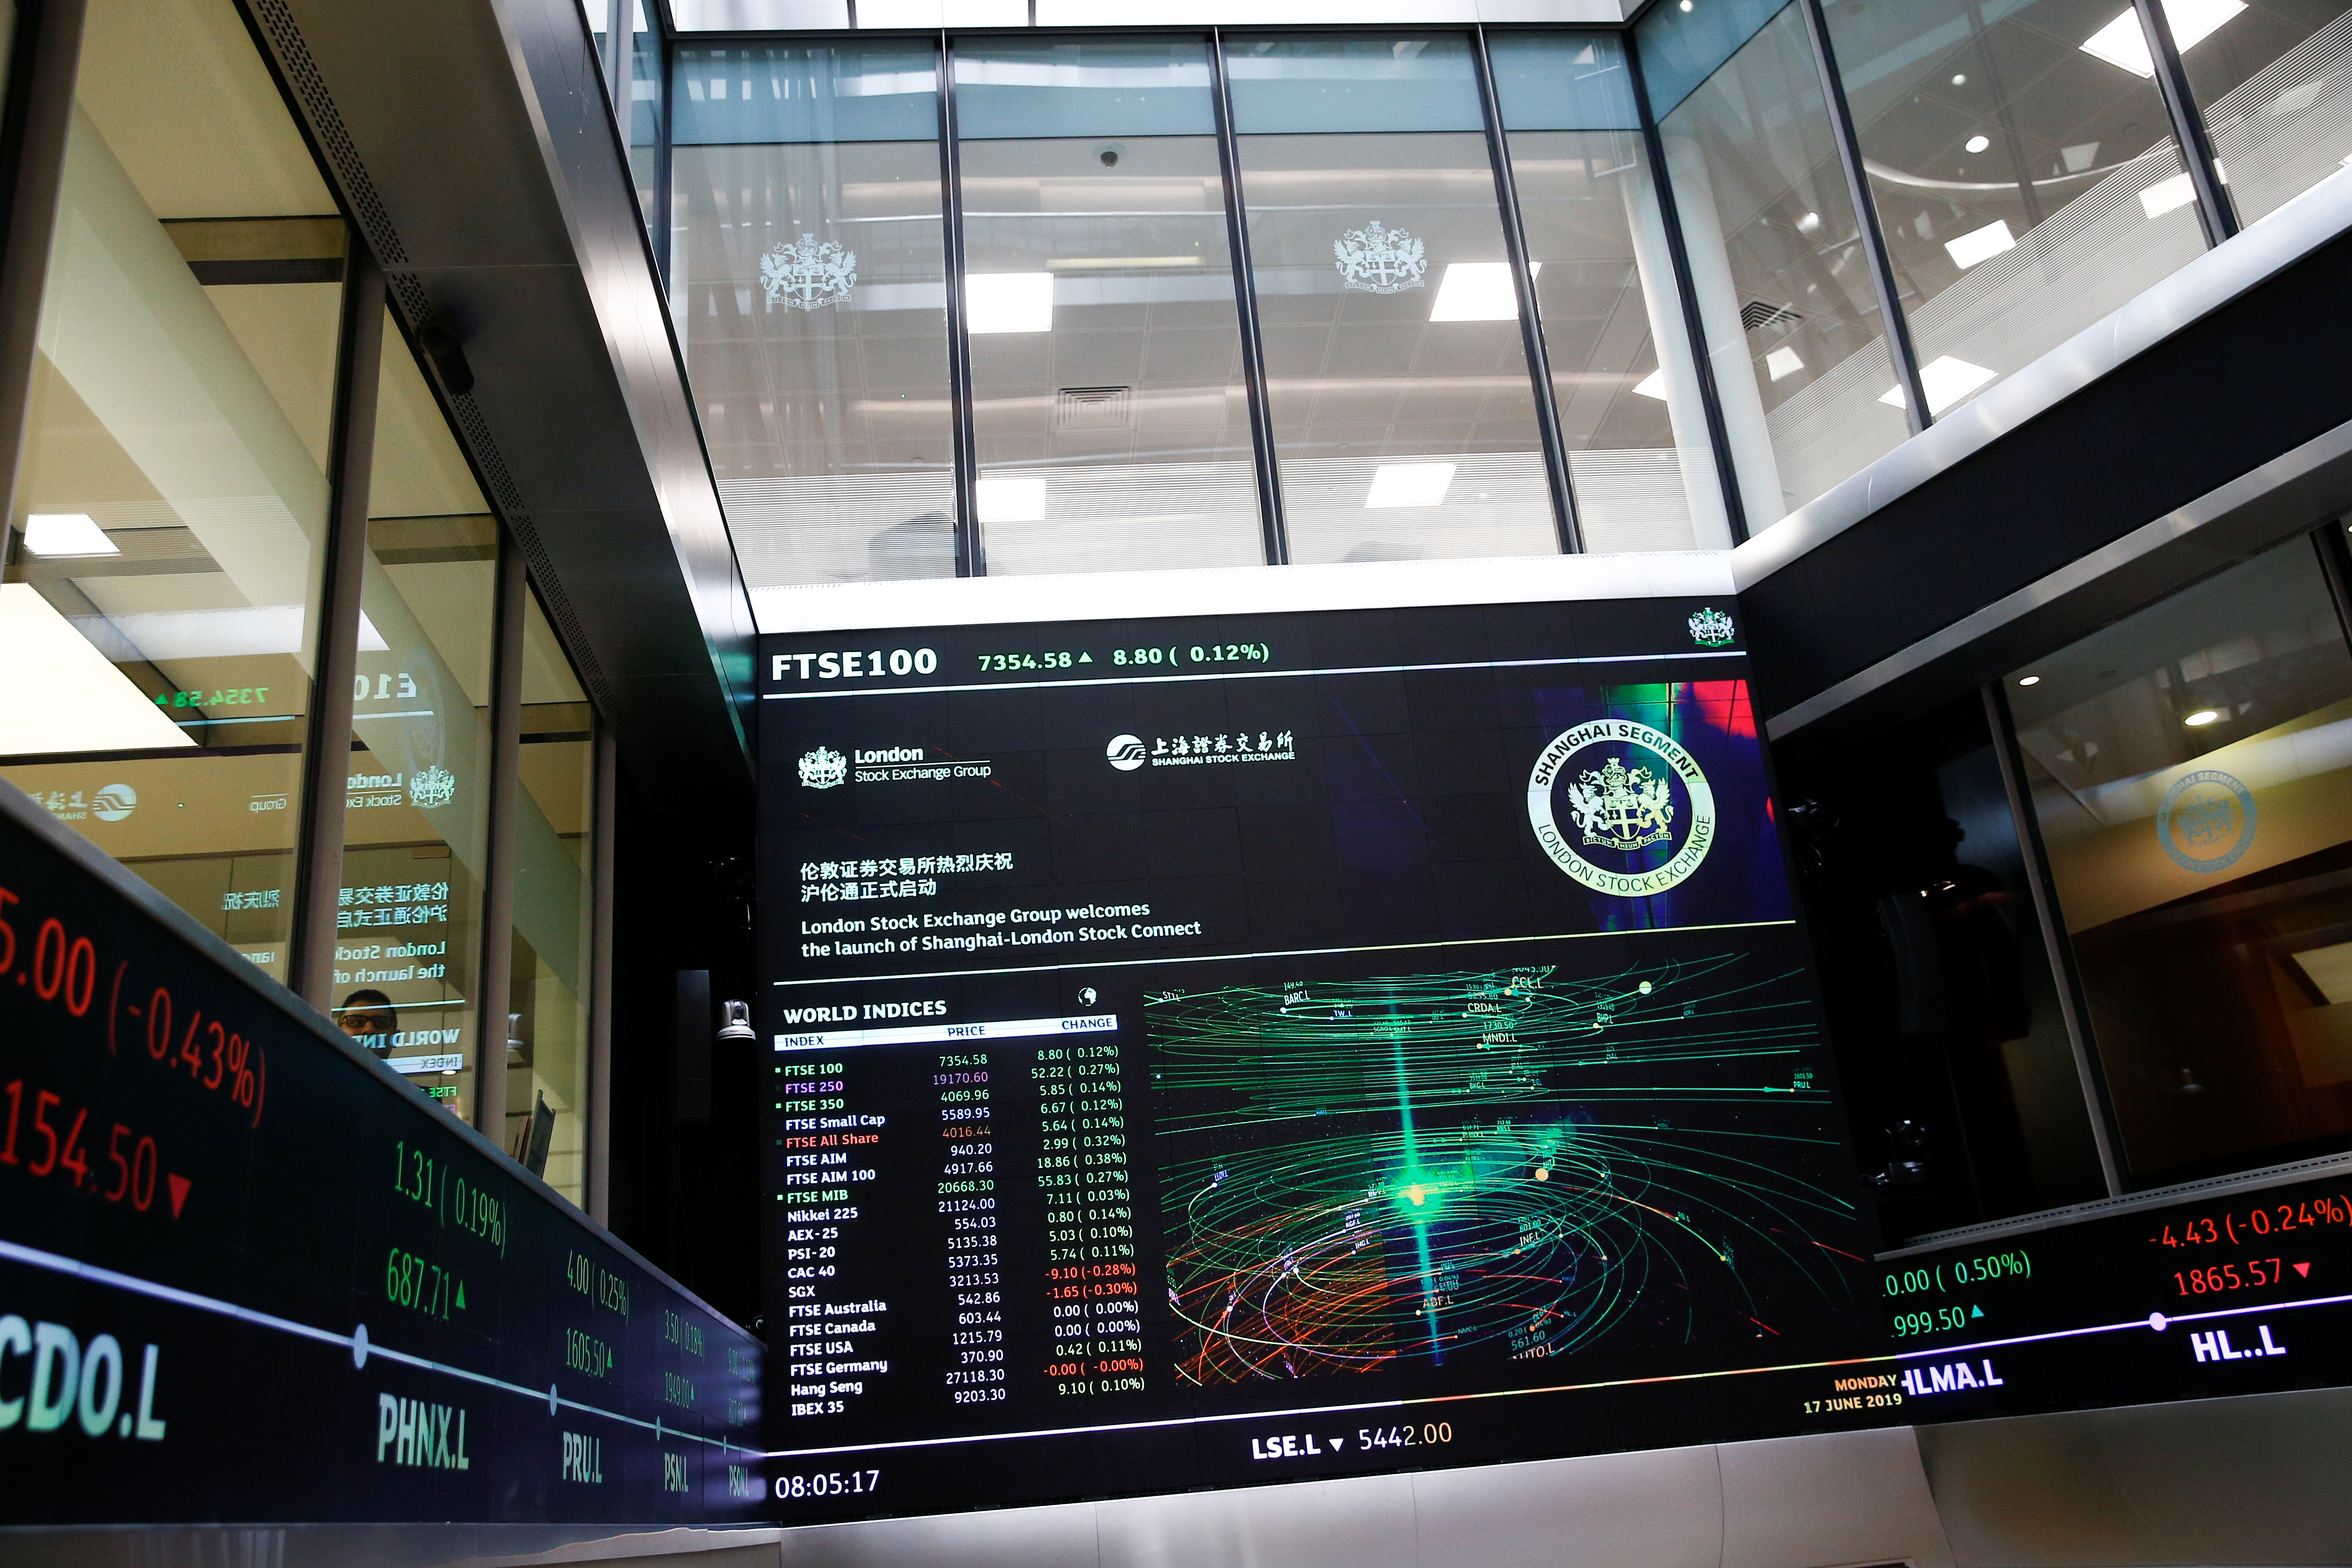 A trading screen is seen following the opening of the markets by British Chancellor of the Exchequer Philip Hammond and Chinese Vice-Premier Hu Chunhua at  the London Stock Exchange in London, Britain June 17, 2019. REUTERS/Henry Nicholls/Pool